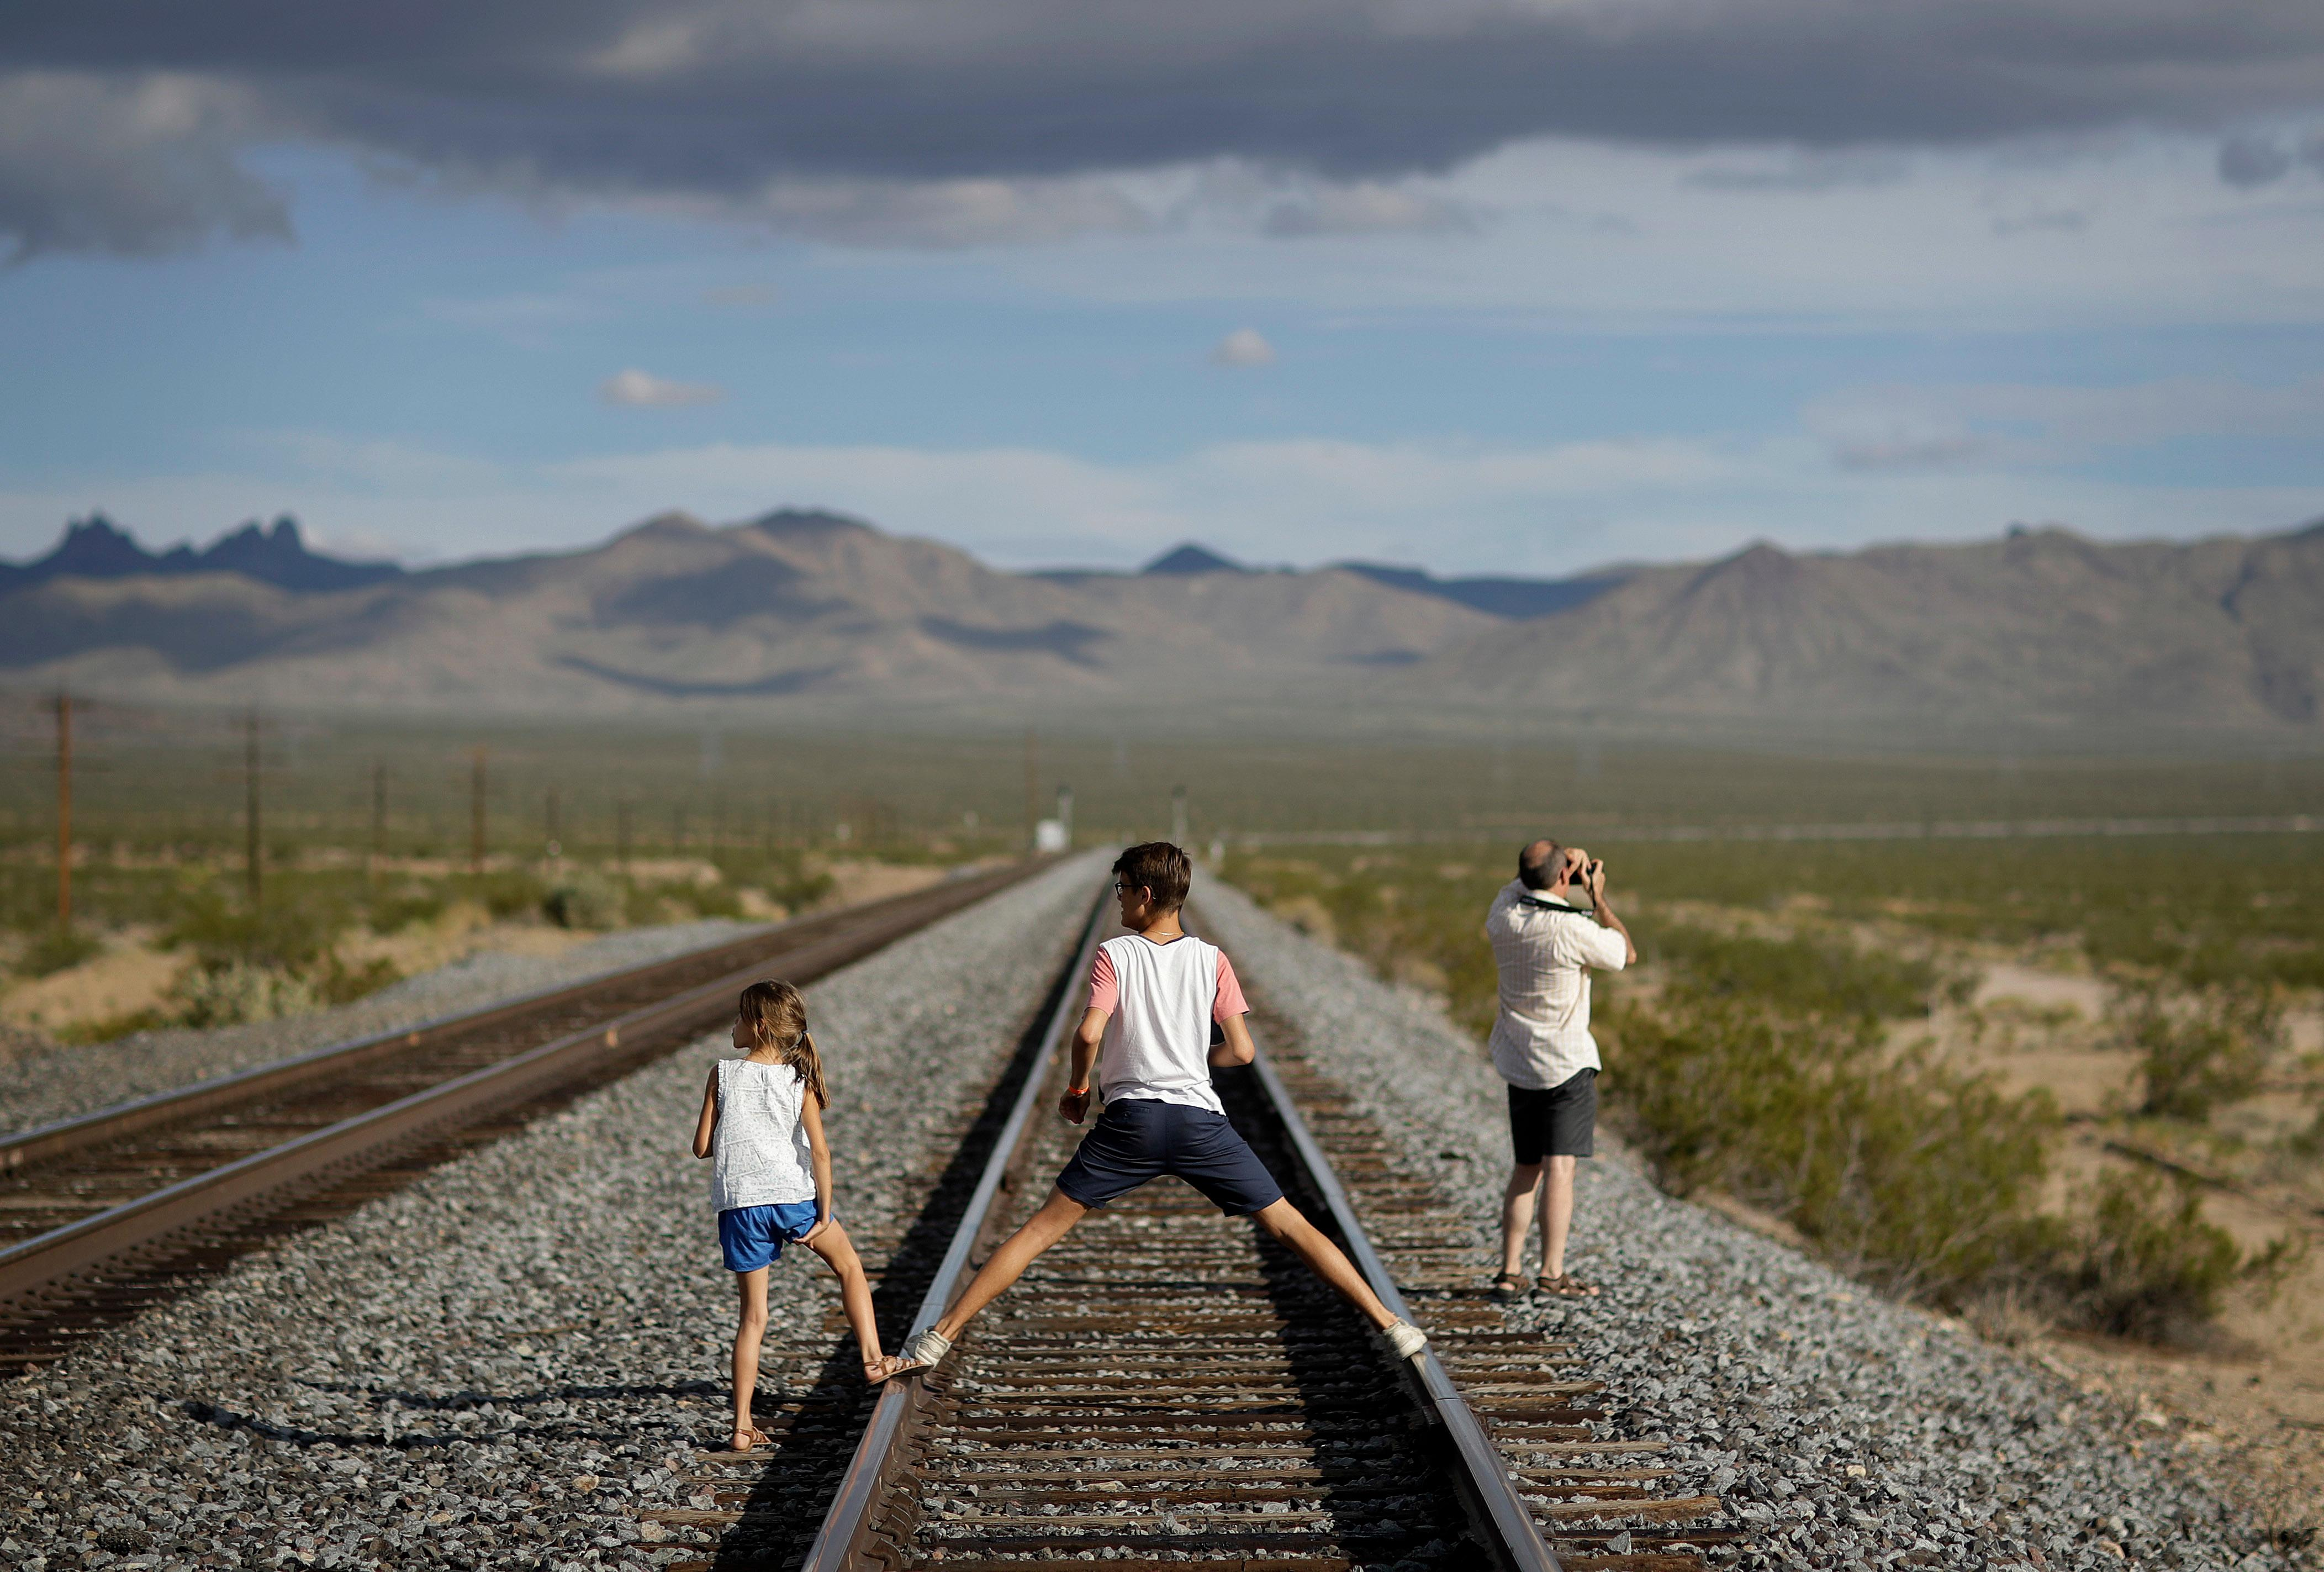 A family walks along train tracks, Thursday, Aug. 3, 2017, in Nipton, Calif. One of the nation's largest cannabis companies announced it has bought the entire 80 acre California desert town of Nipton. (AP Photo/John Locher)